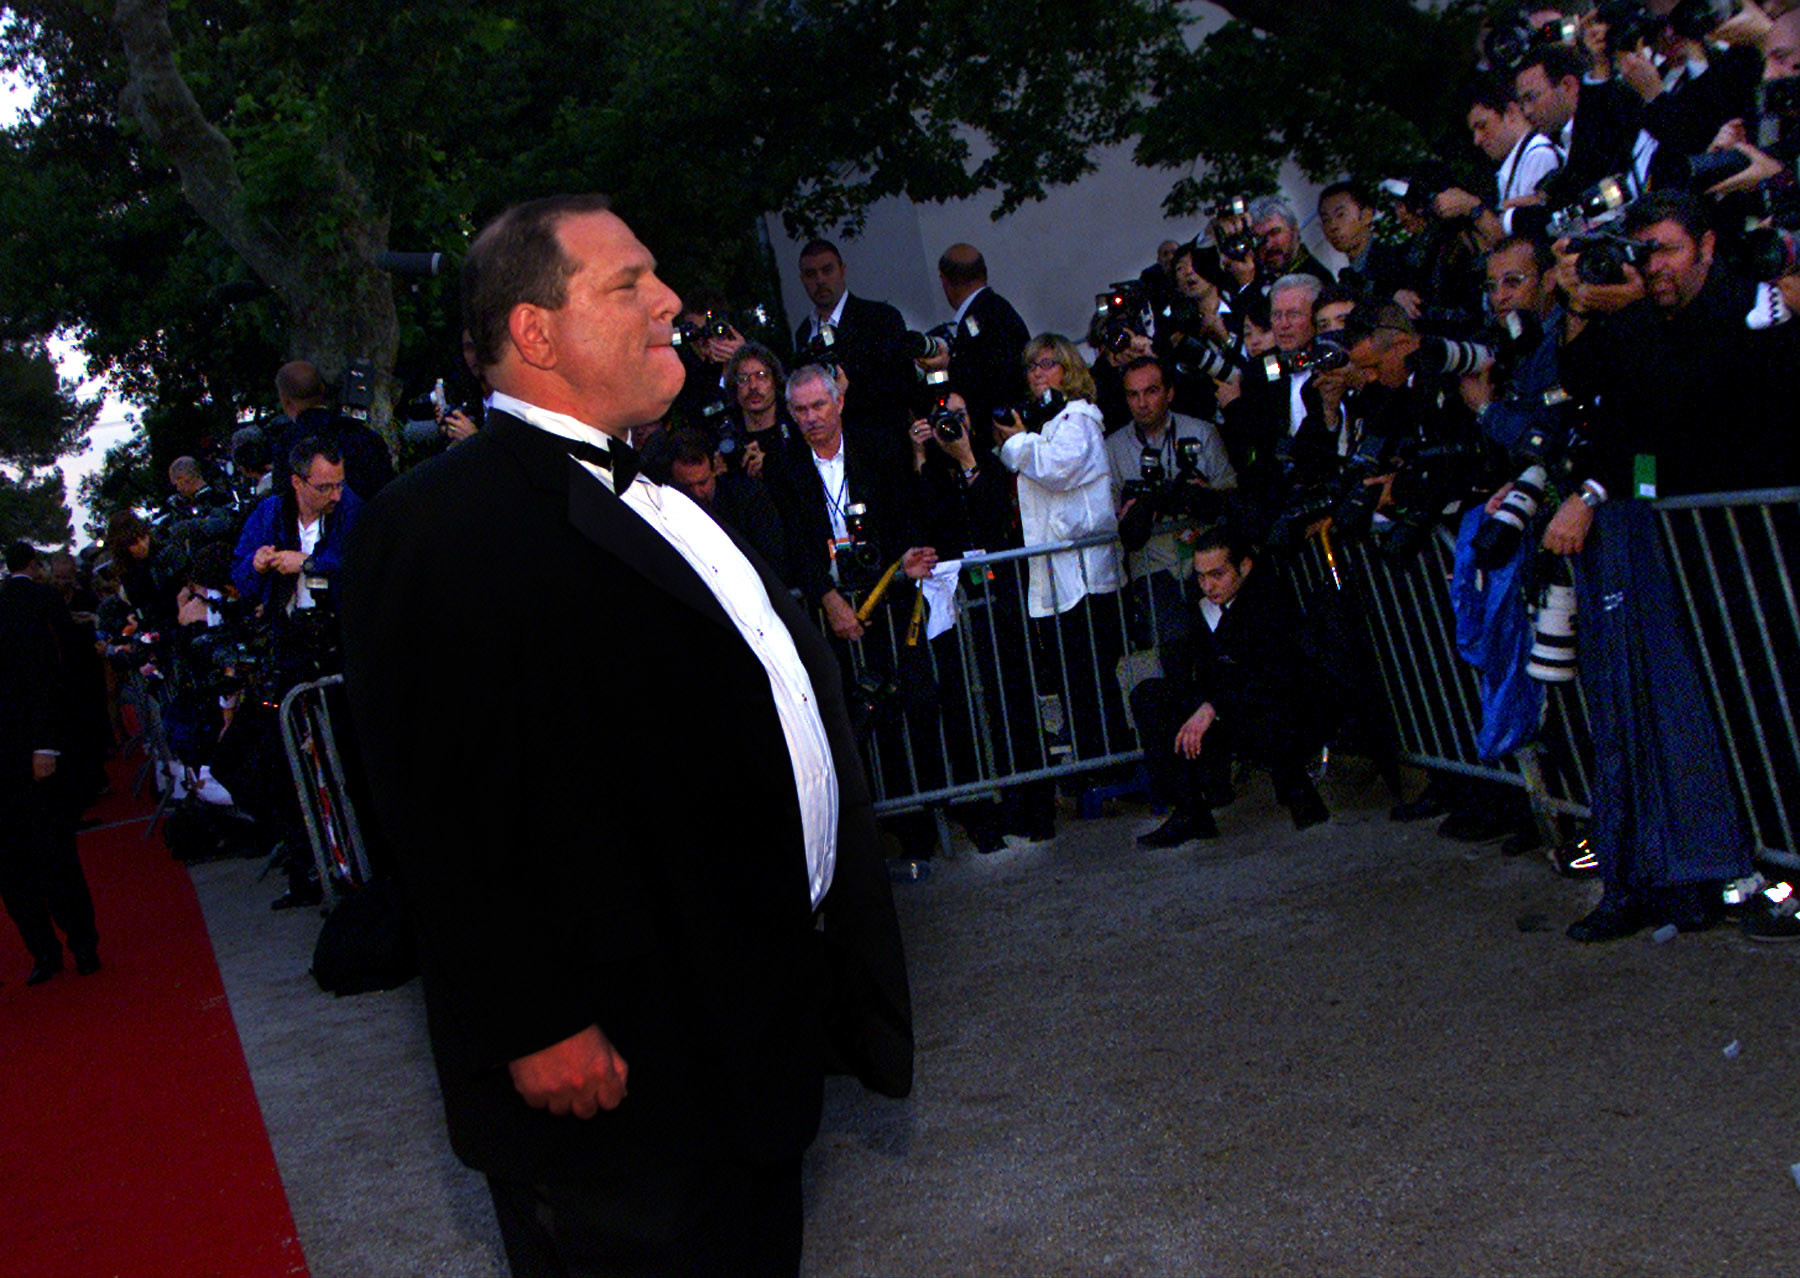 Harvey Weinstein walks the red carpet during the 2001 Cannes Film Festival. (Robert Gauthier / Los Angeles Times)